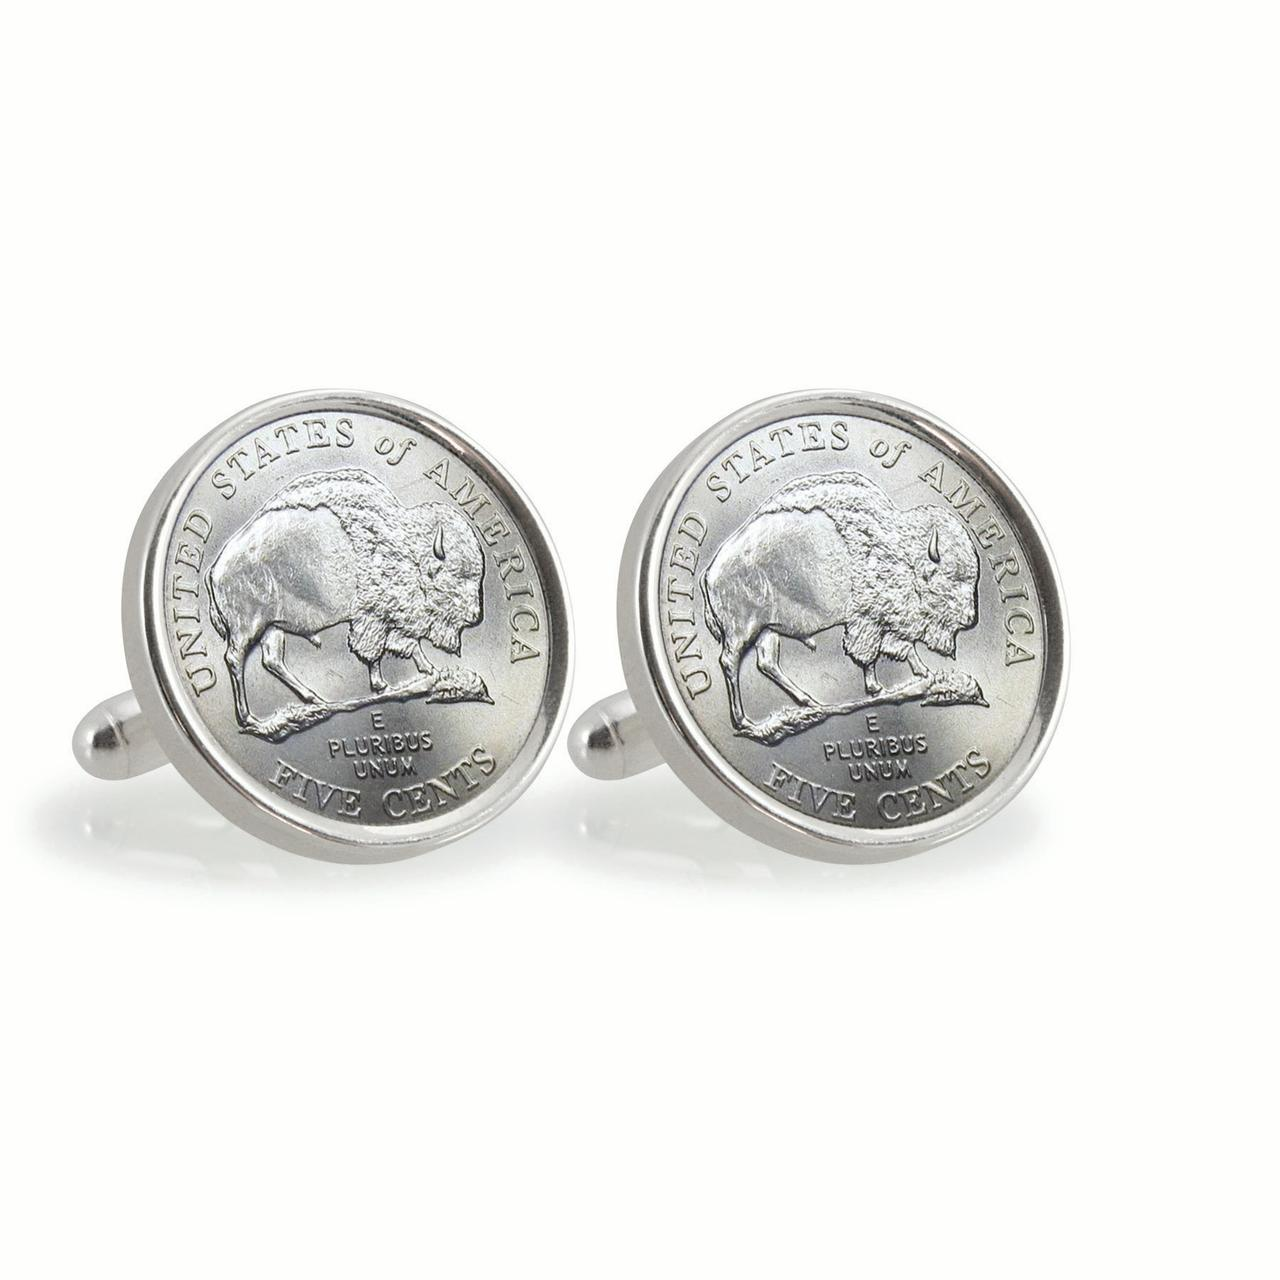 2005 Bison Nickel Sterling Silver Coin Cuff Links